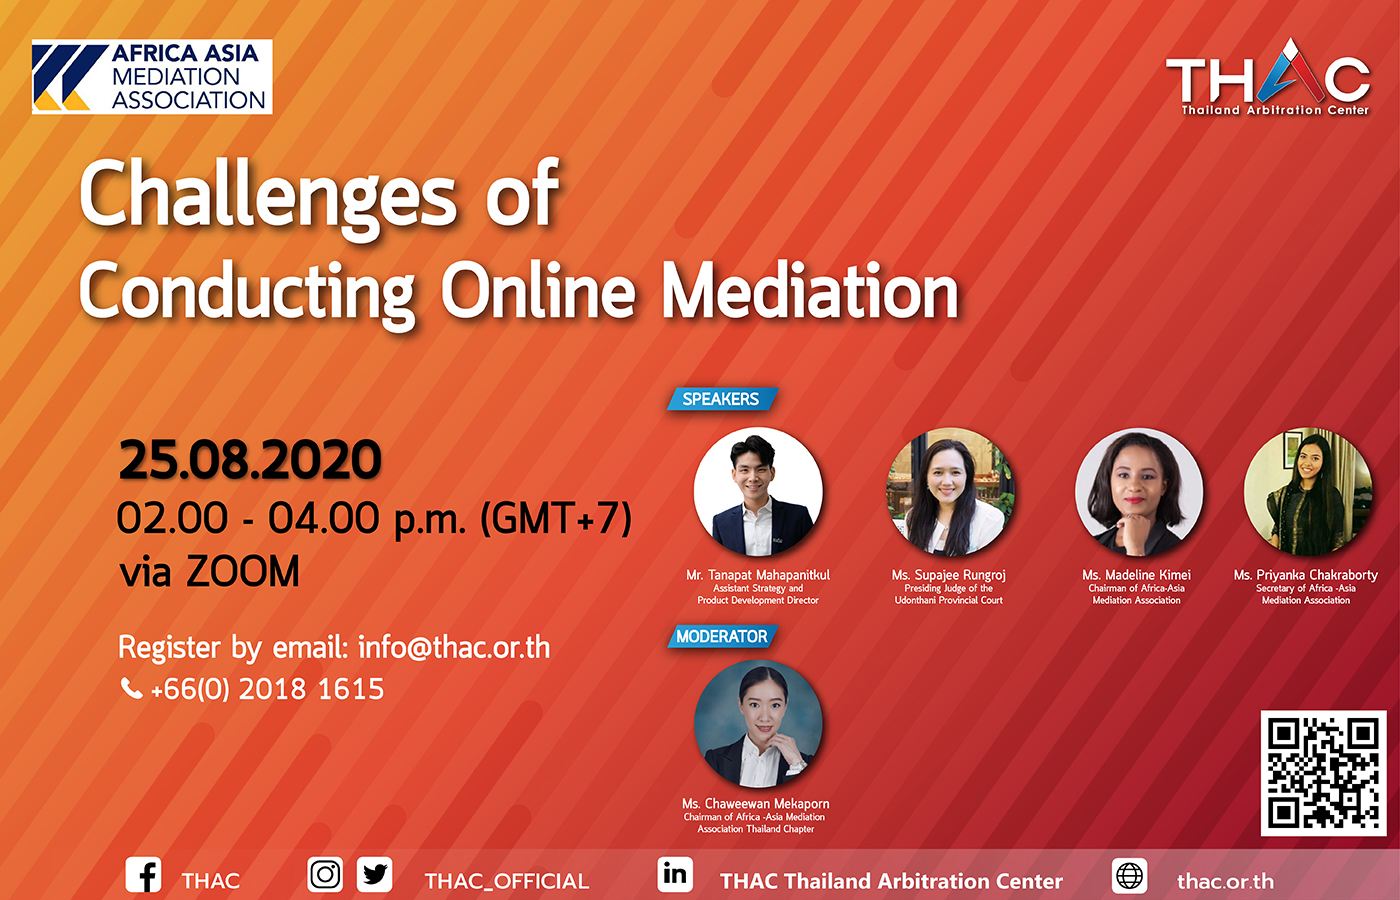 Challenges of Conducting Online Mediation